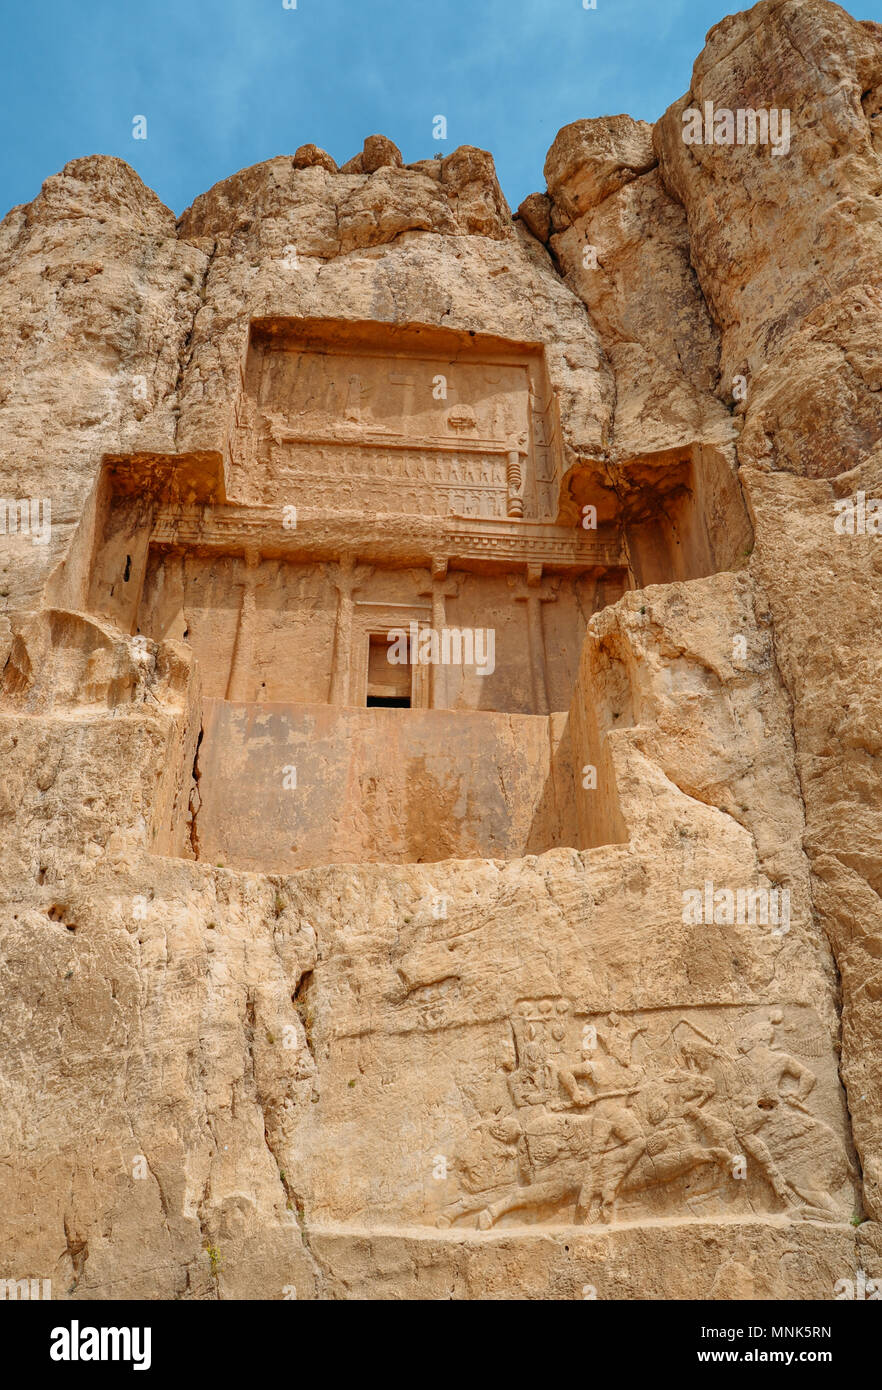 The ancient tombs of Achaemenid dynasty Kings of Persia are carved in rocky cliff in Naqsh-e Rustam, Iran. - Stock Image